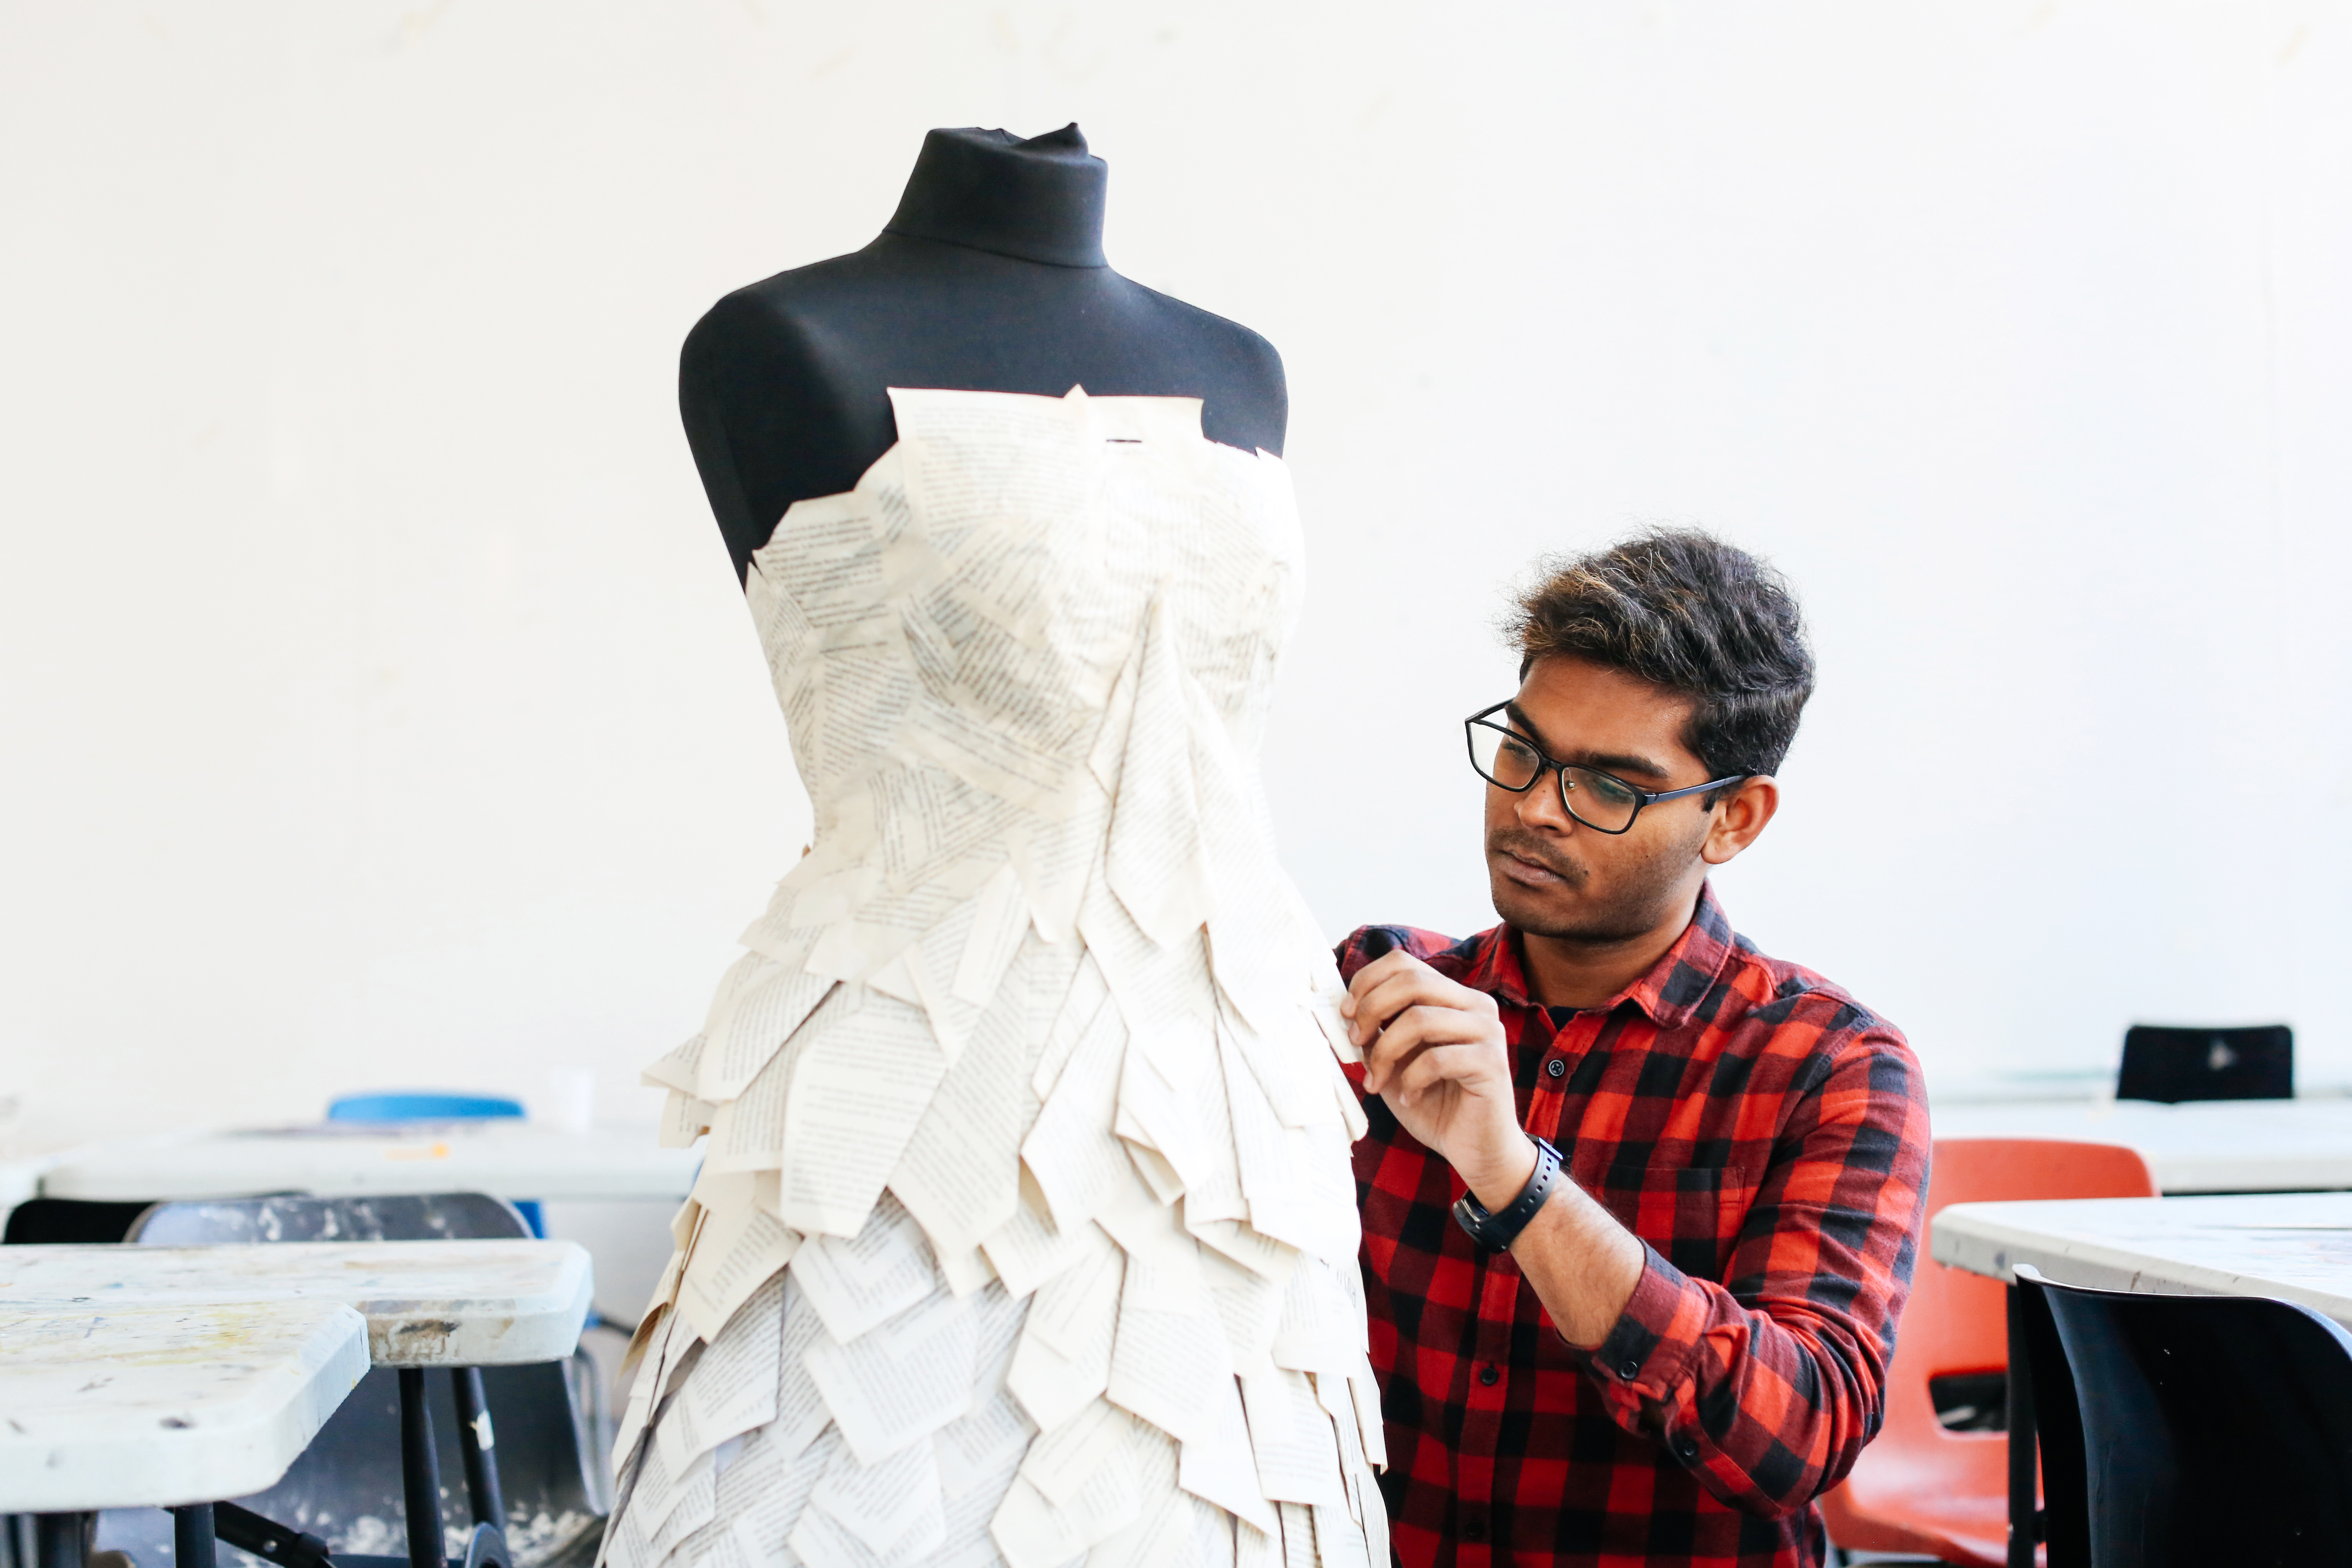 UAL student Pavithiran Charlas working on a dress displayed on a mannequin.